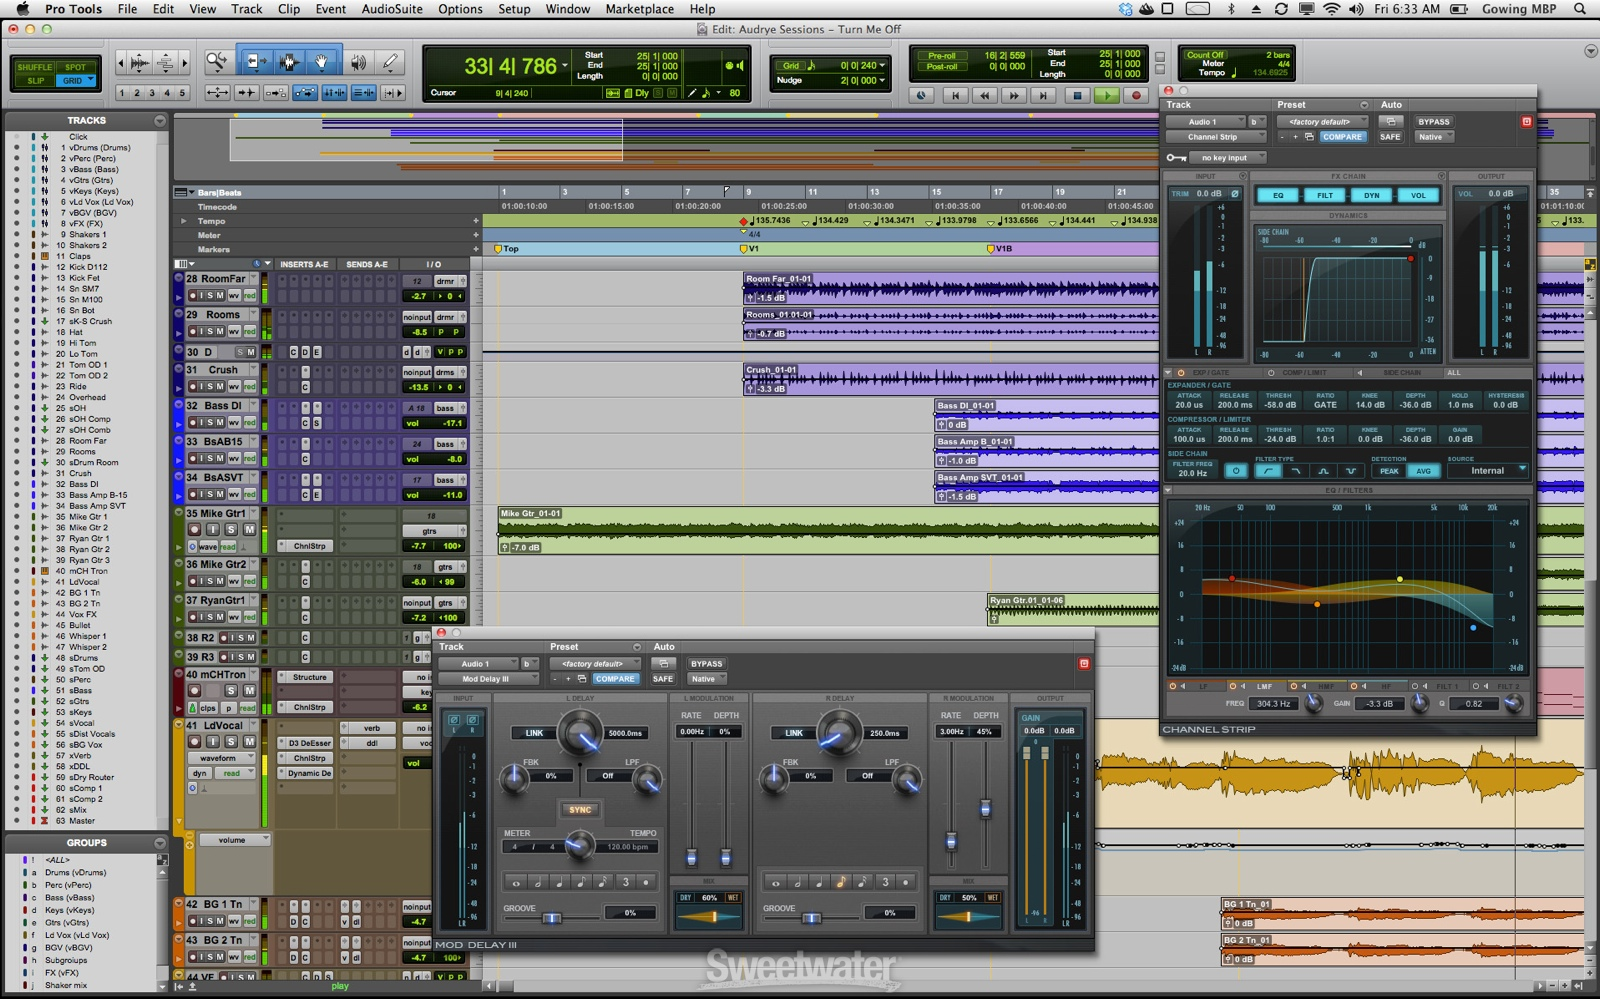 pro tools youtube